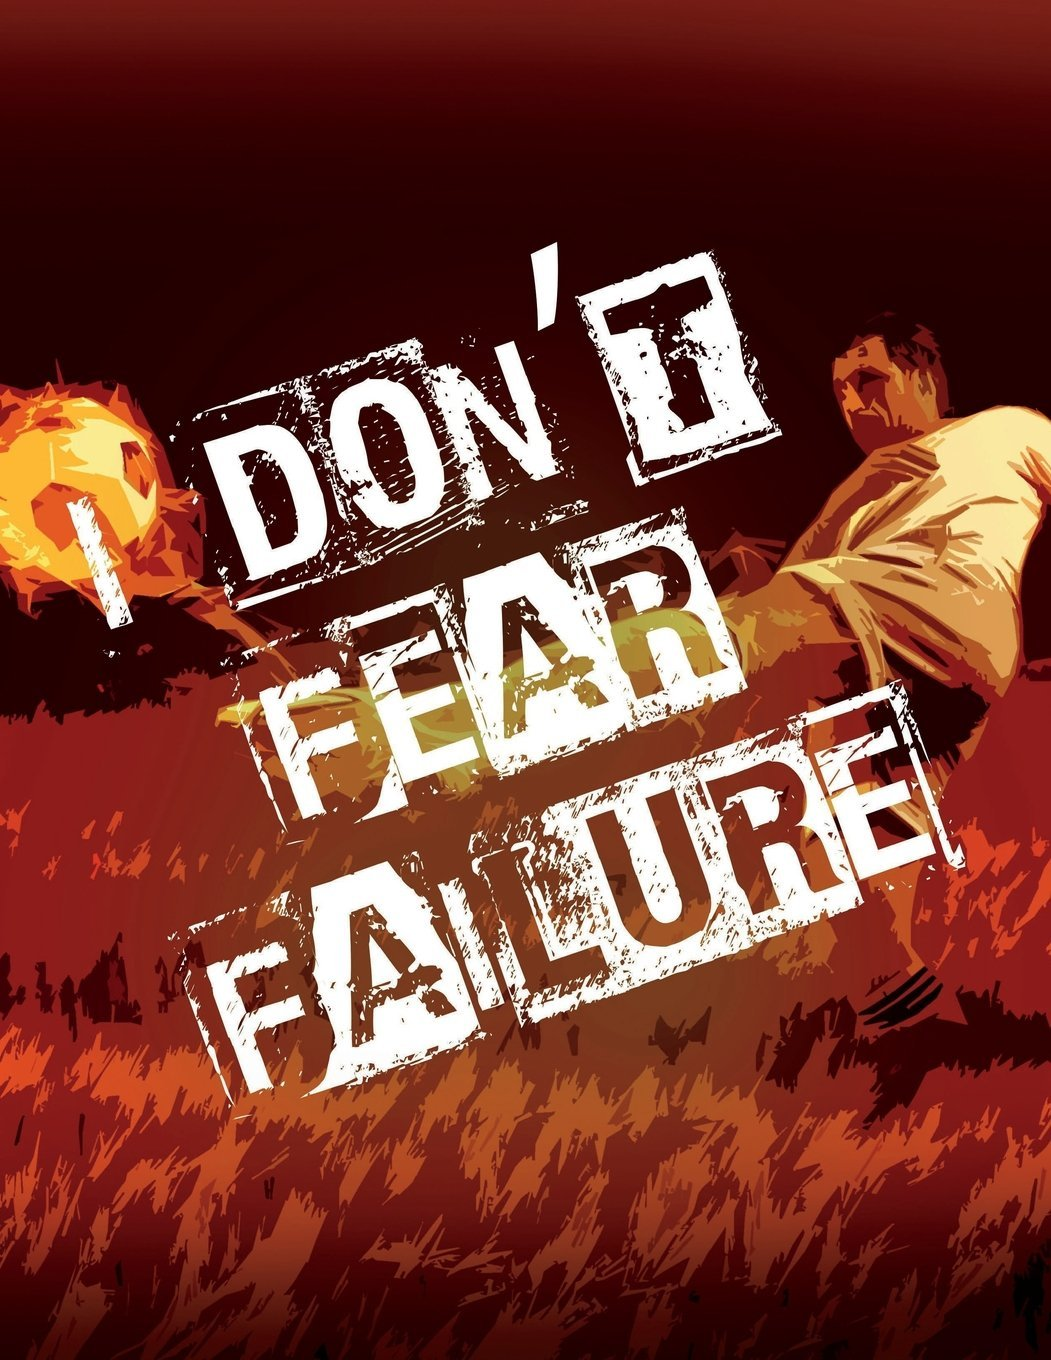 Read Online Soccer Coach Gifts: I Don't Fear Failure - Unique Composition Notebook for Soccer Coaches, Trainers, Teachers, Mentors, Referee and Managers, Men and ... Journal) (College Rule, 8.5 x 11 inches) ebook